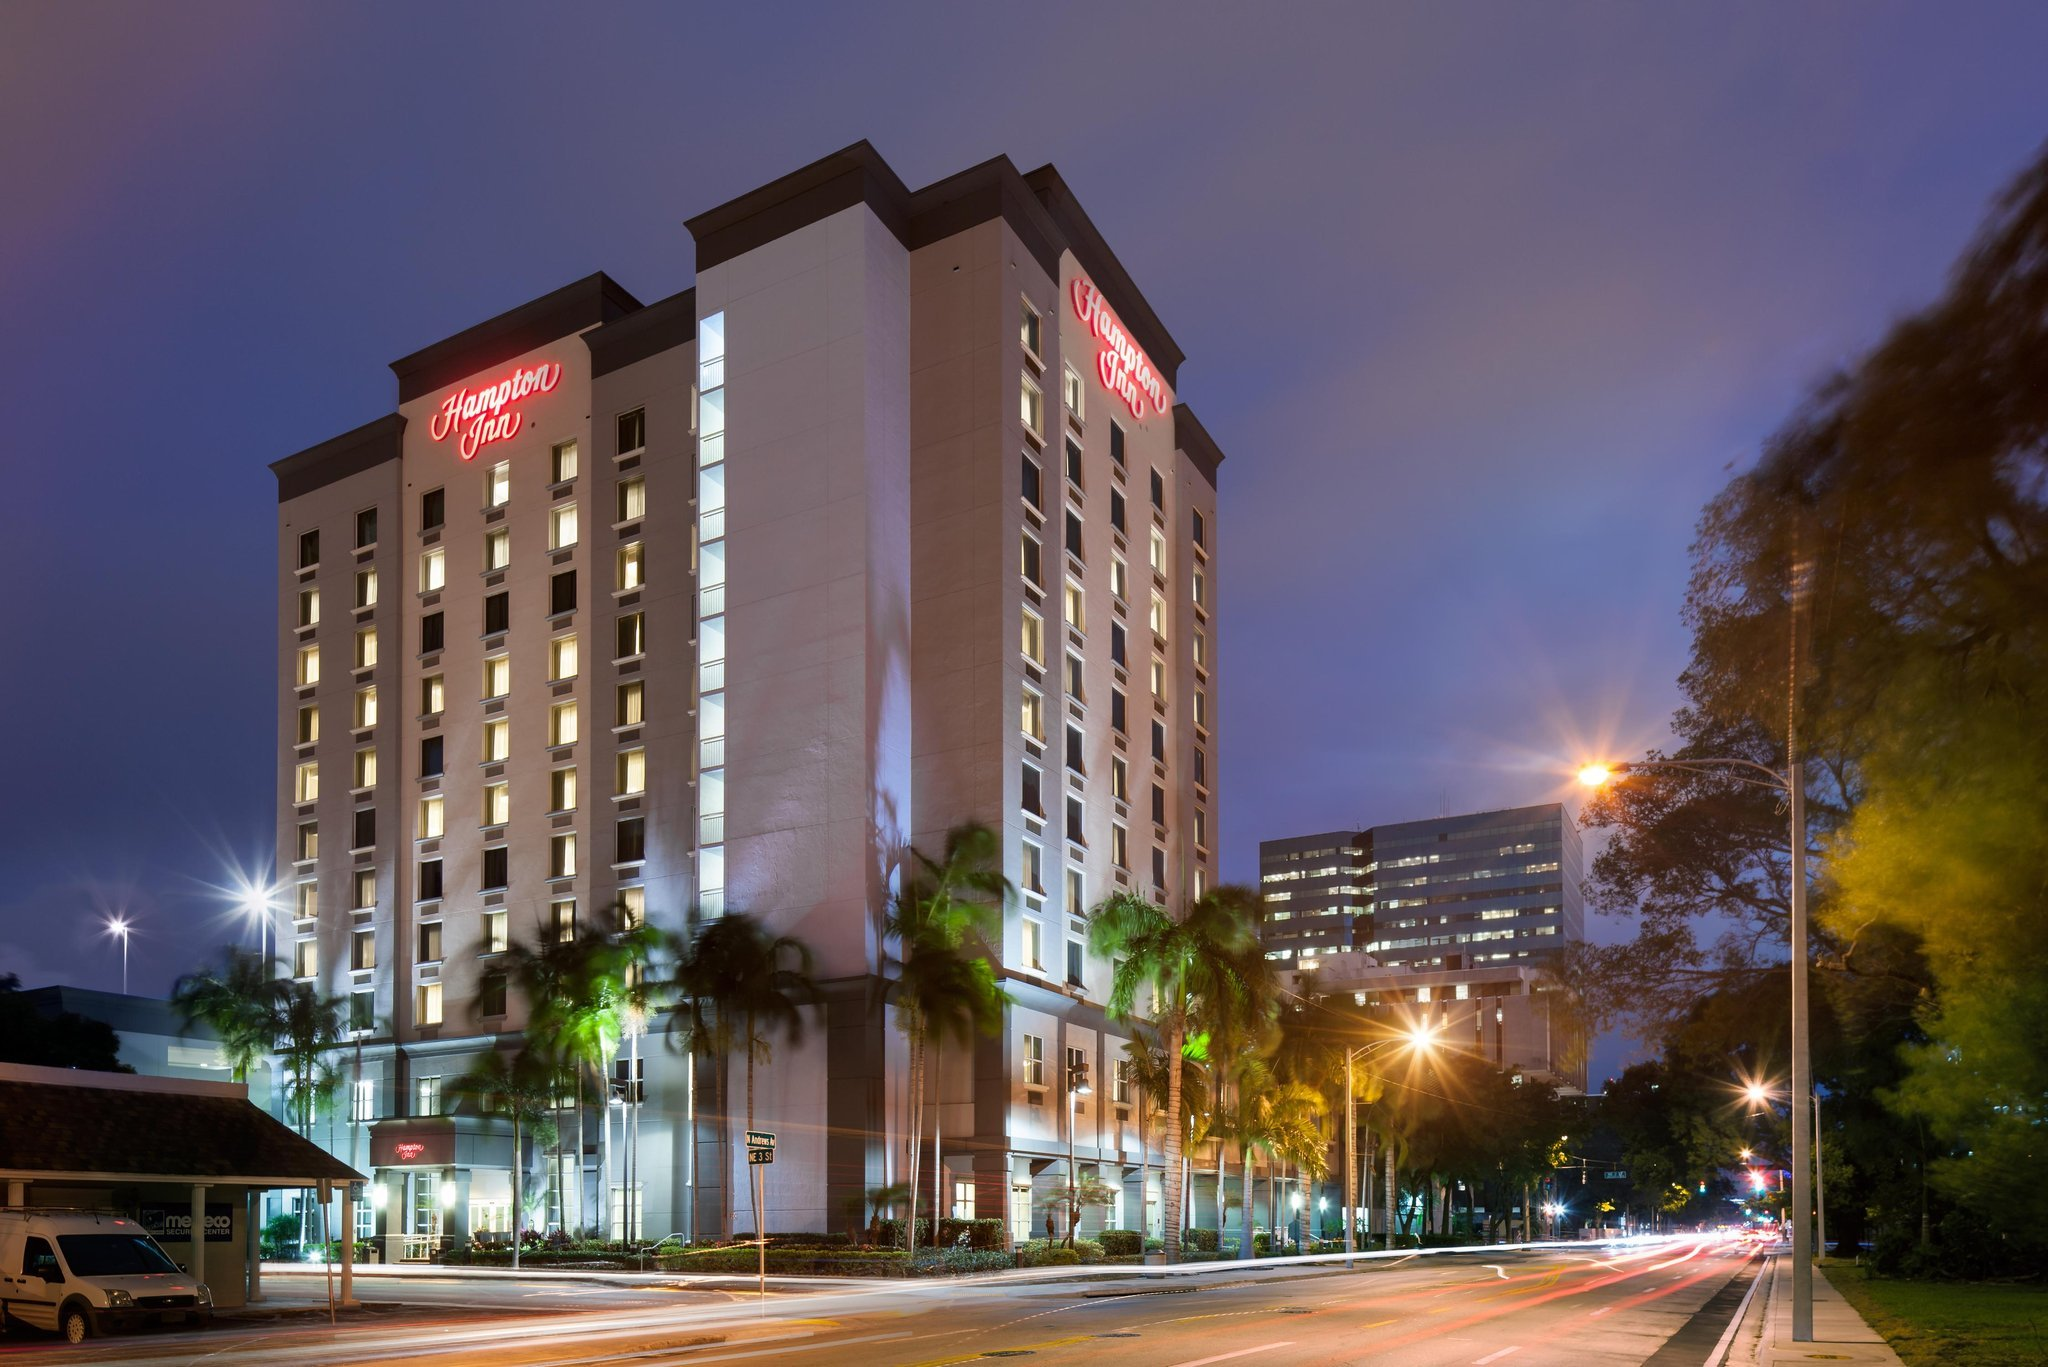 Hampton Inn Ft. Lauderdale /Downtown Las Olas Area, FL.